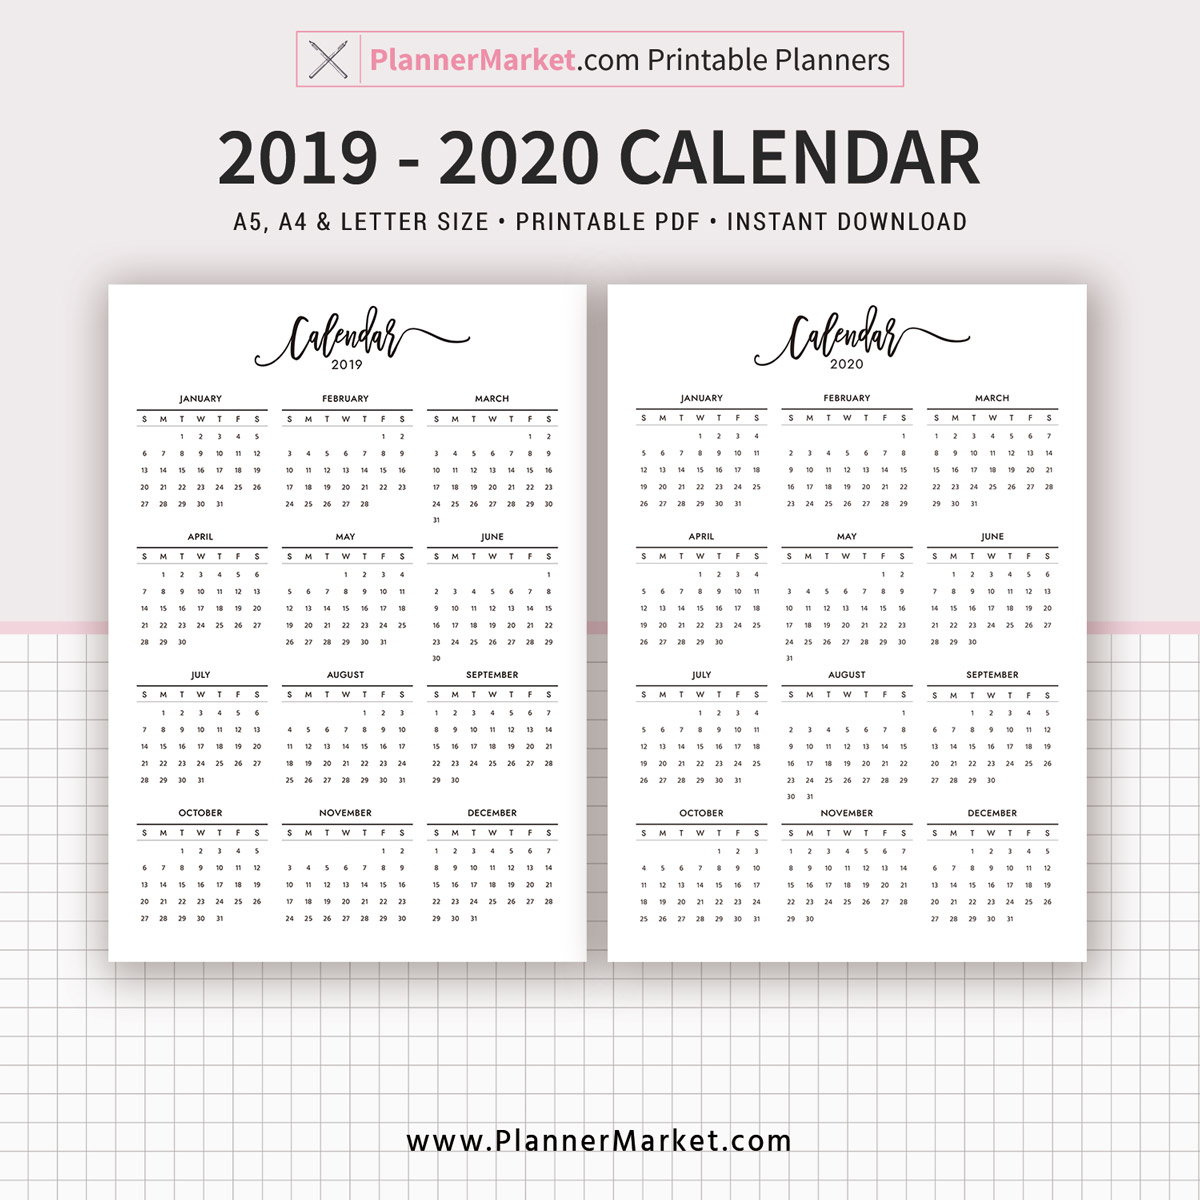 2019-2020 Yearly Calendar Printable, Filofax A5, A4, Letter Size, Planner  Refill, Planner Pages, Planner Inserts, Instant Download pertaining to 11 X 8.5 Calendar Pages 2020 Free